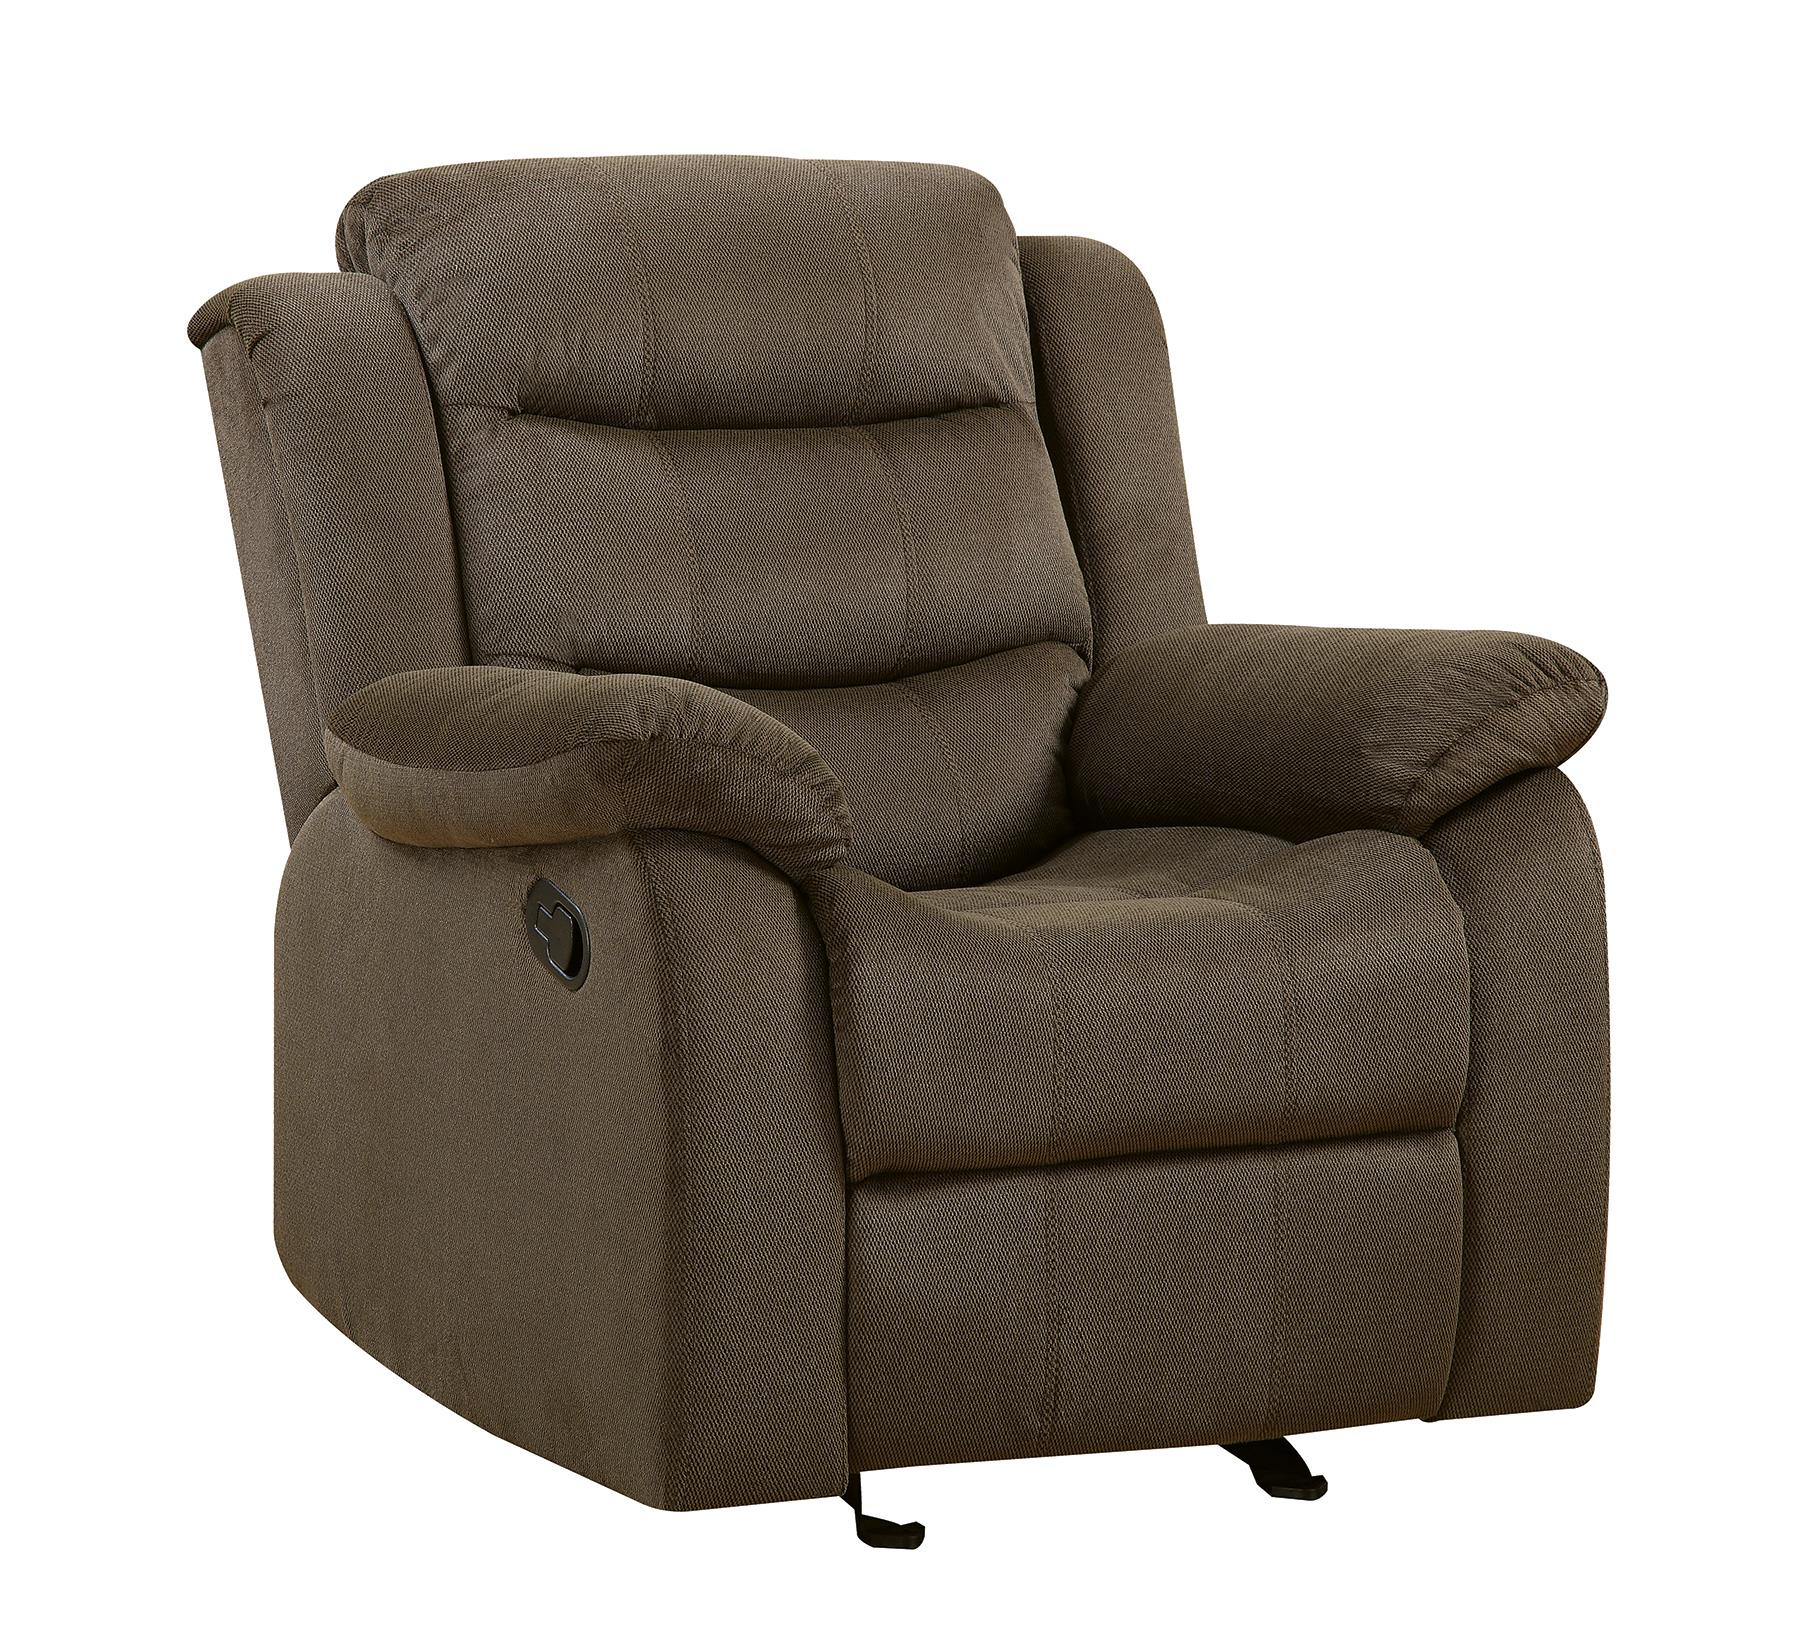 Rodman Glider Recliner by Coaster at Northeast Factory Direct